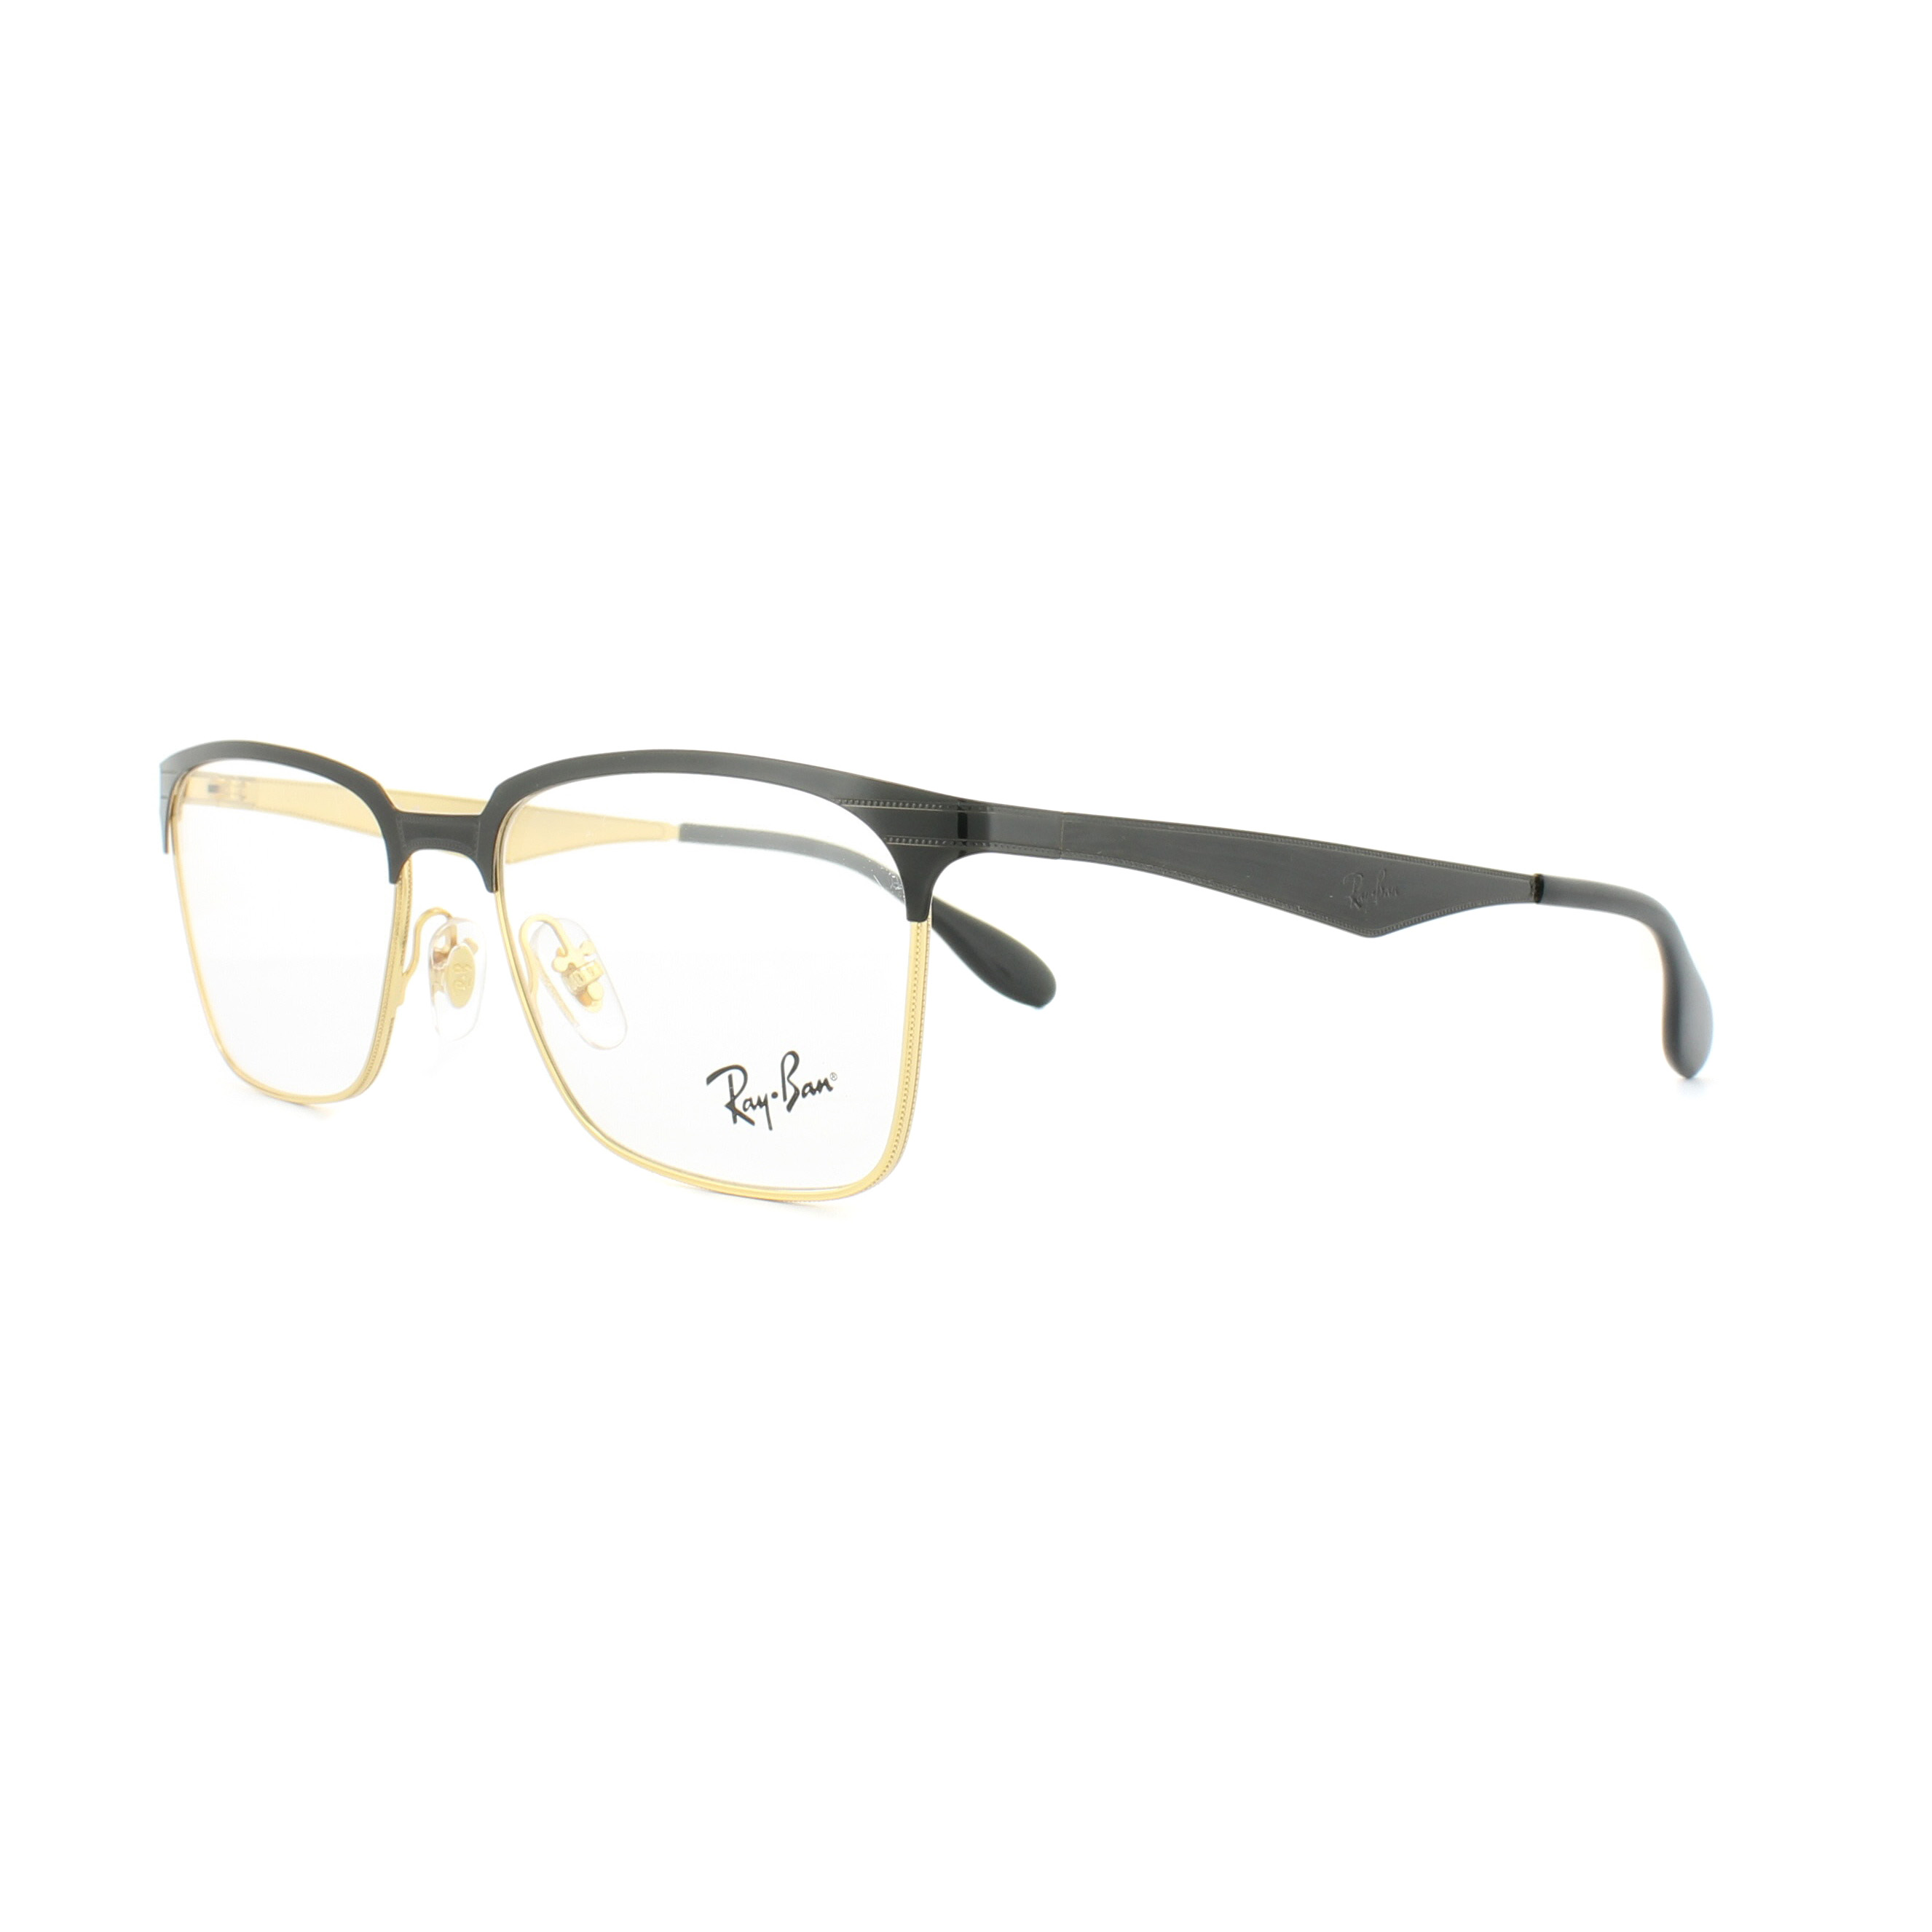 5e14f0f778 Sentinel Ray-Ban Glasses Frames 6344 2890 Gold Shiny Black 54mm Mens